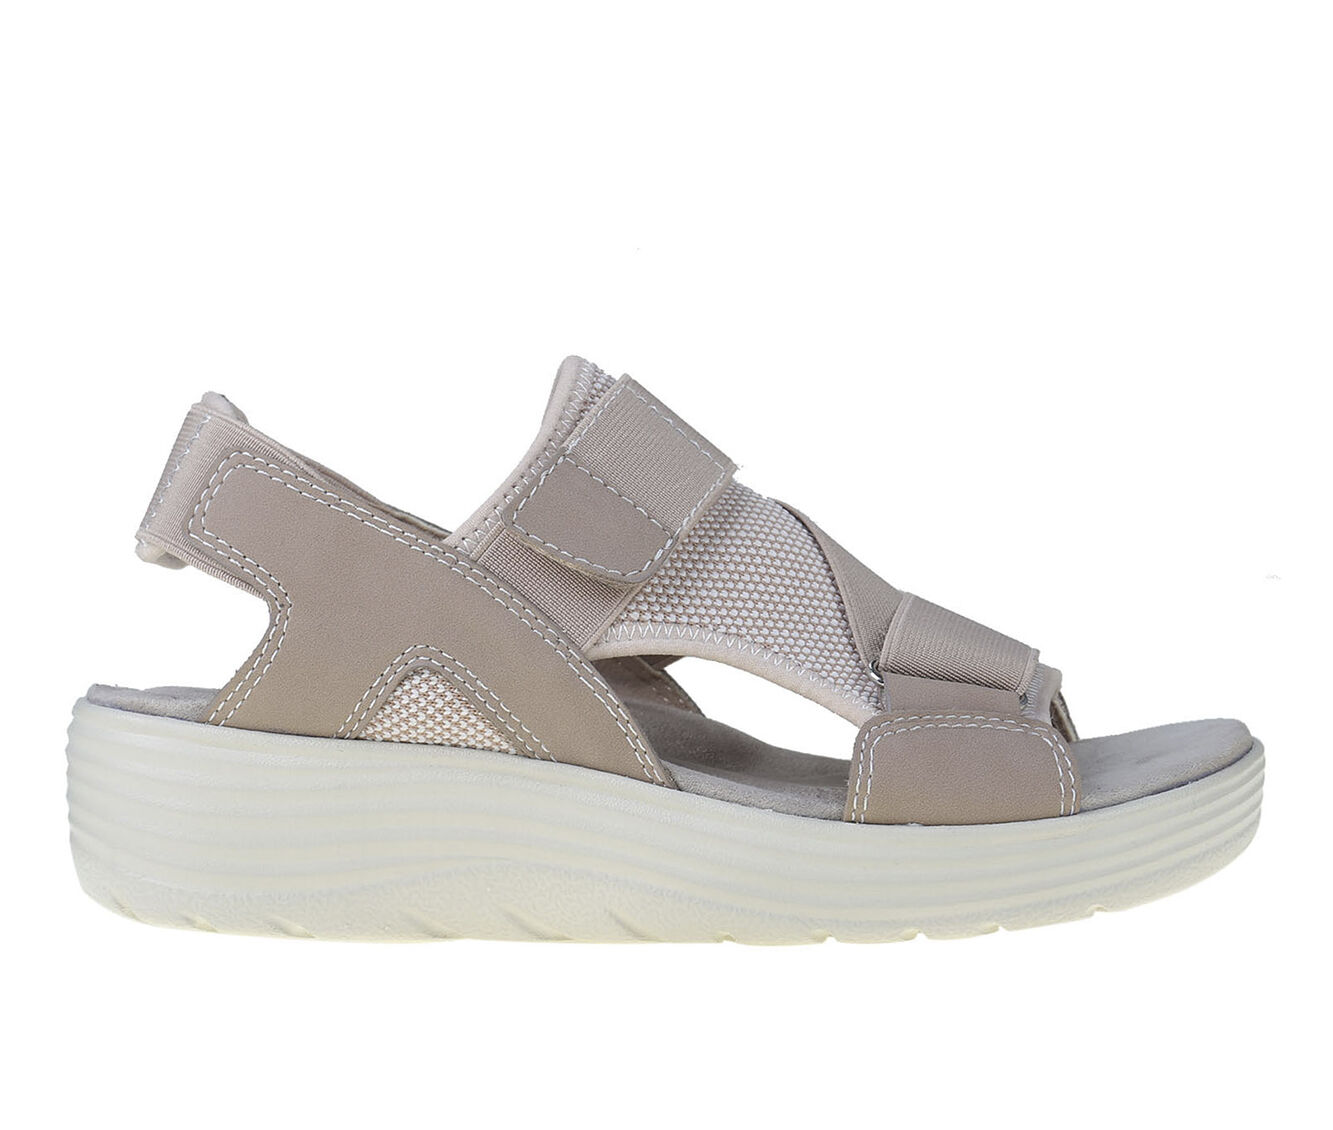 Women's Earth Origins Willow Genevieve Sandals Dusty Coral